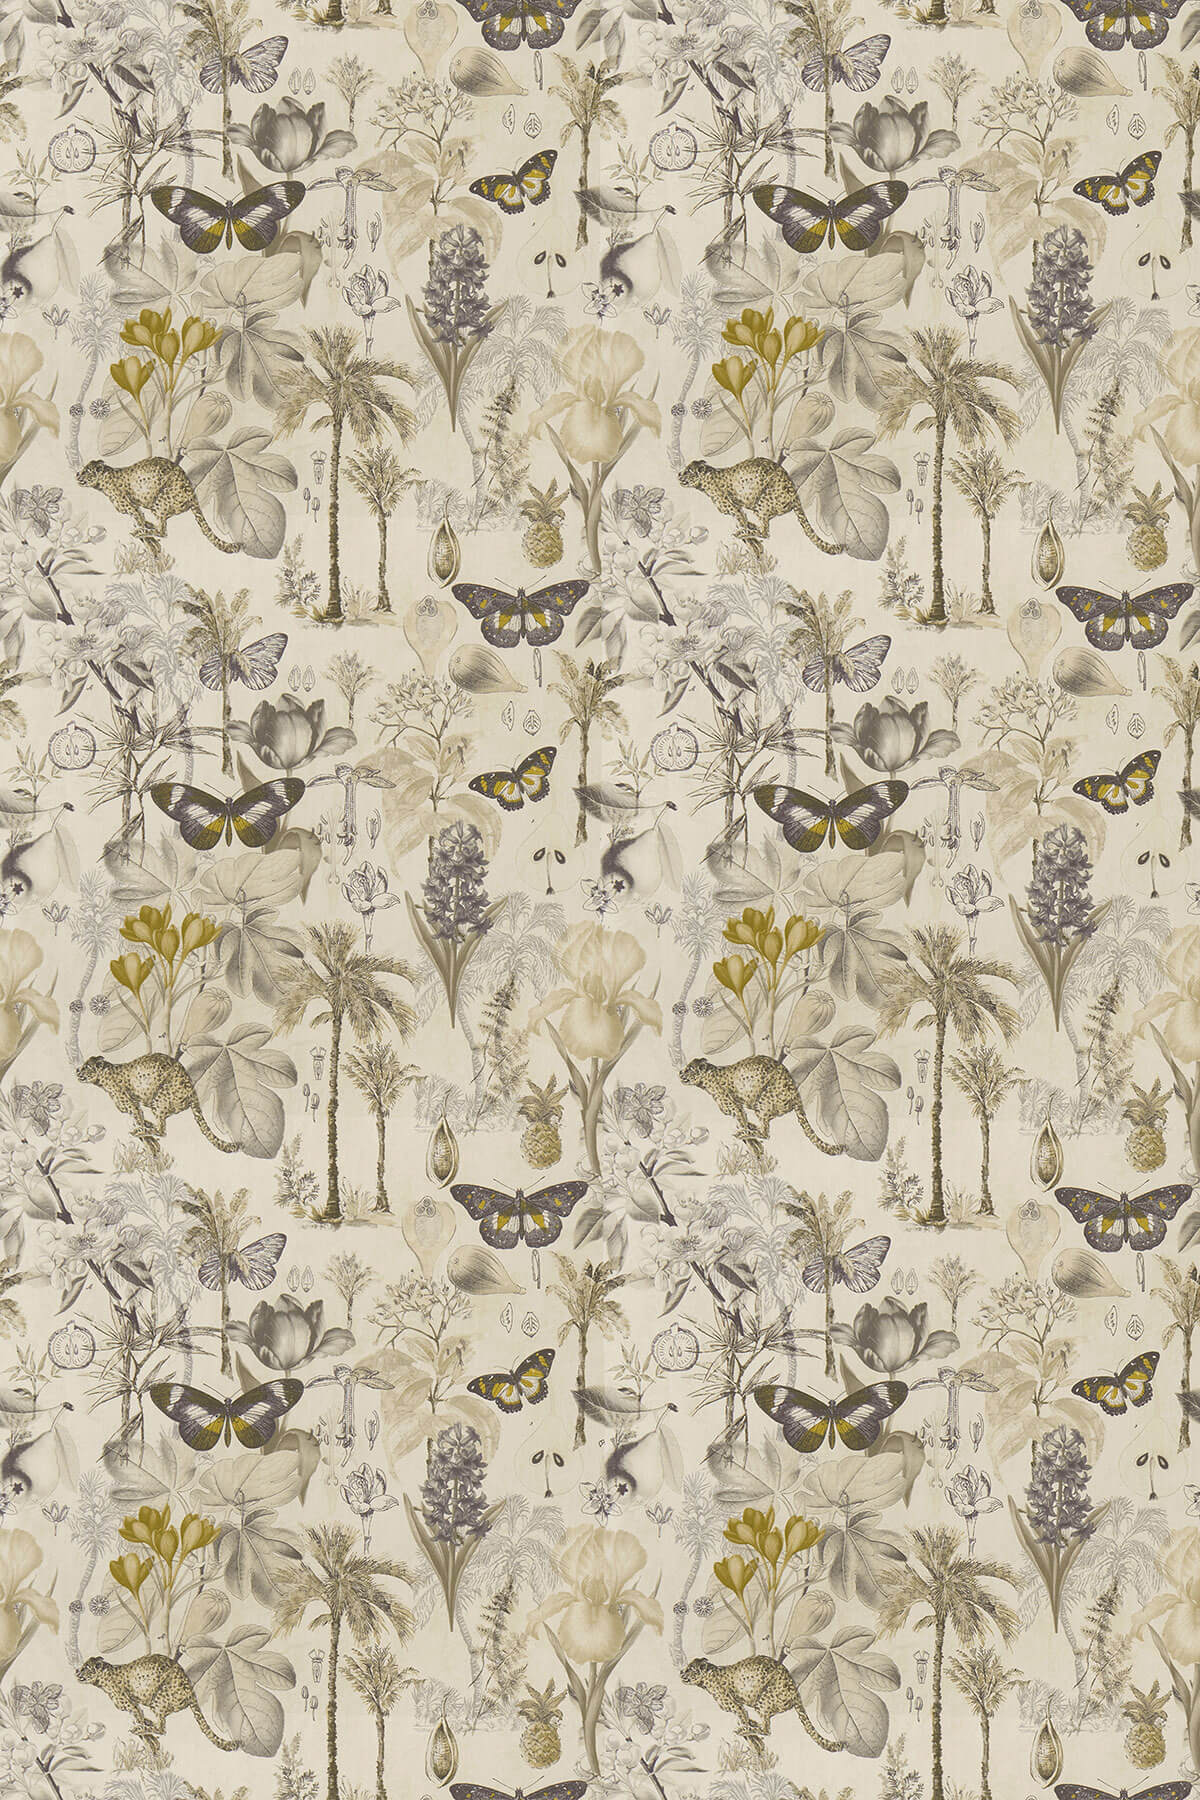 Clarke & Clarke Botany Charcoal / Chartreuse Fabric - Product code: F1297/01